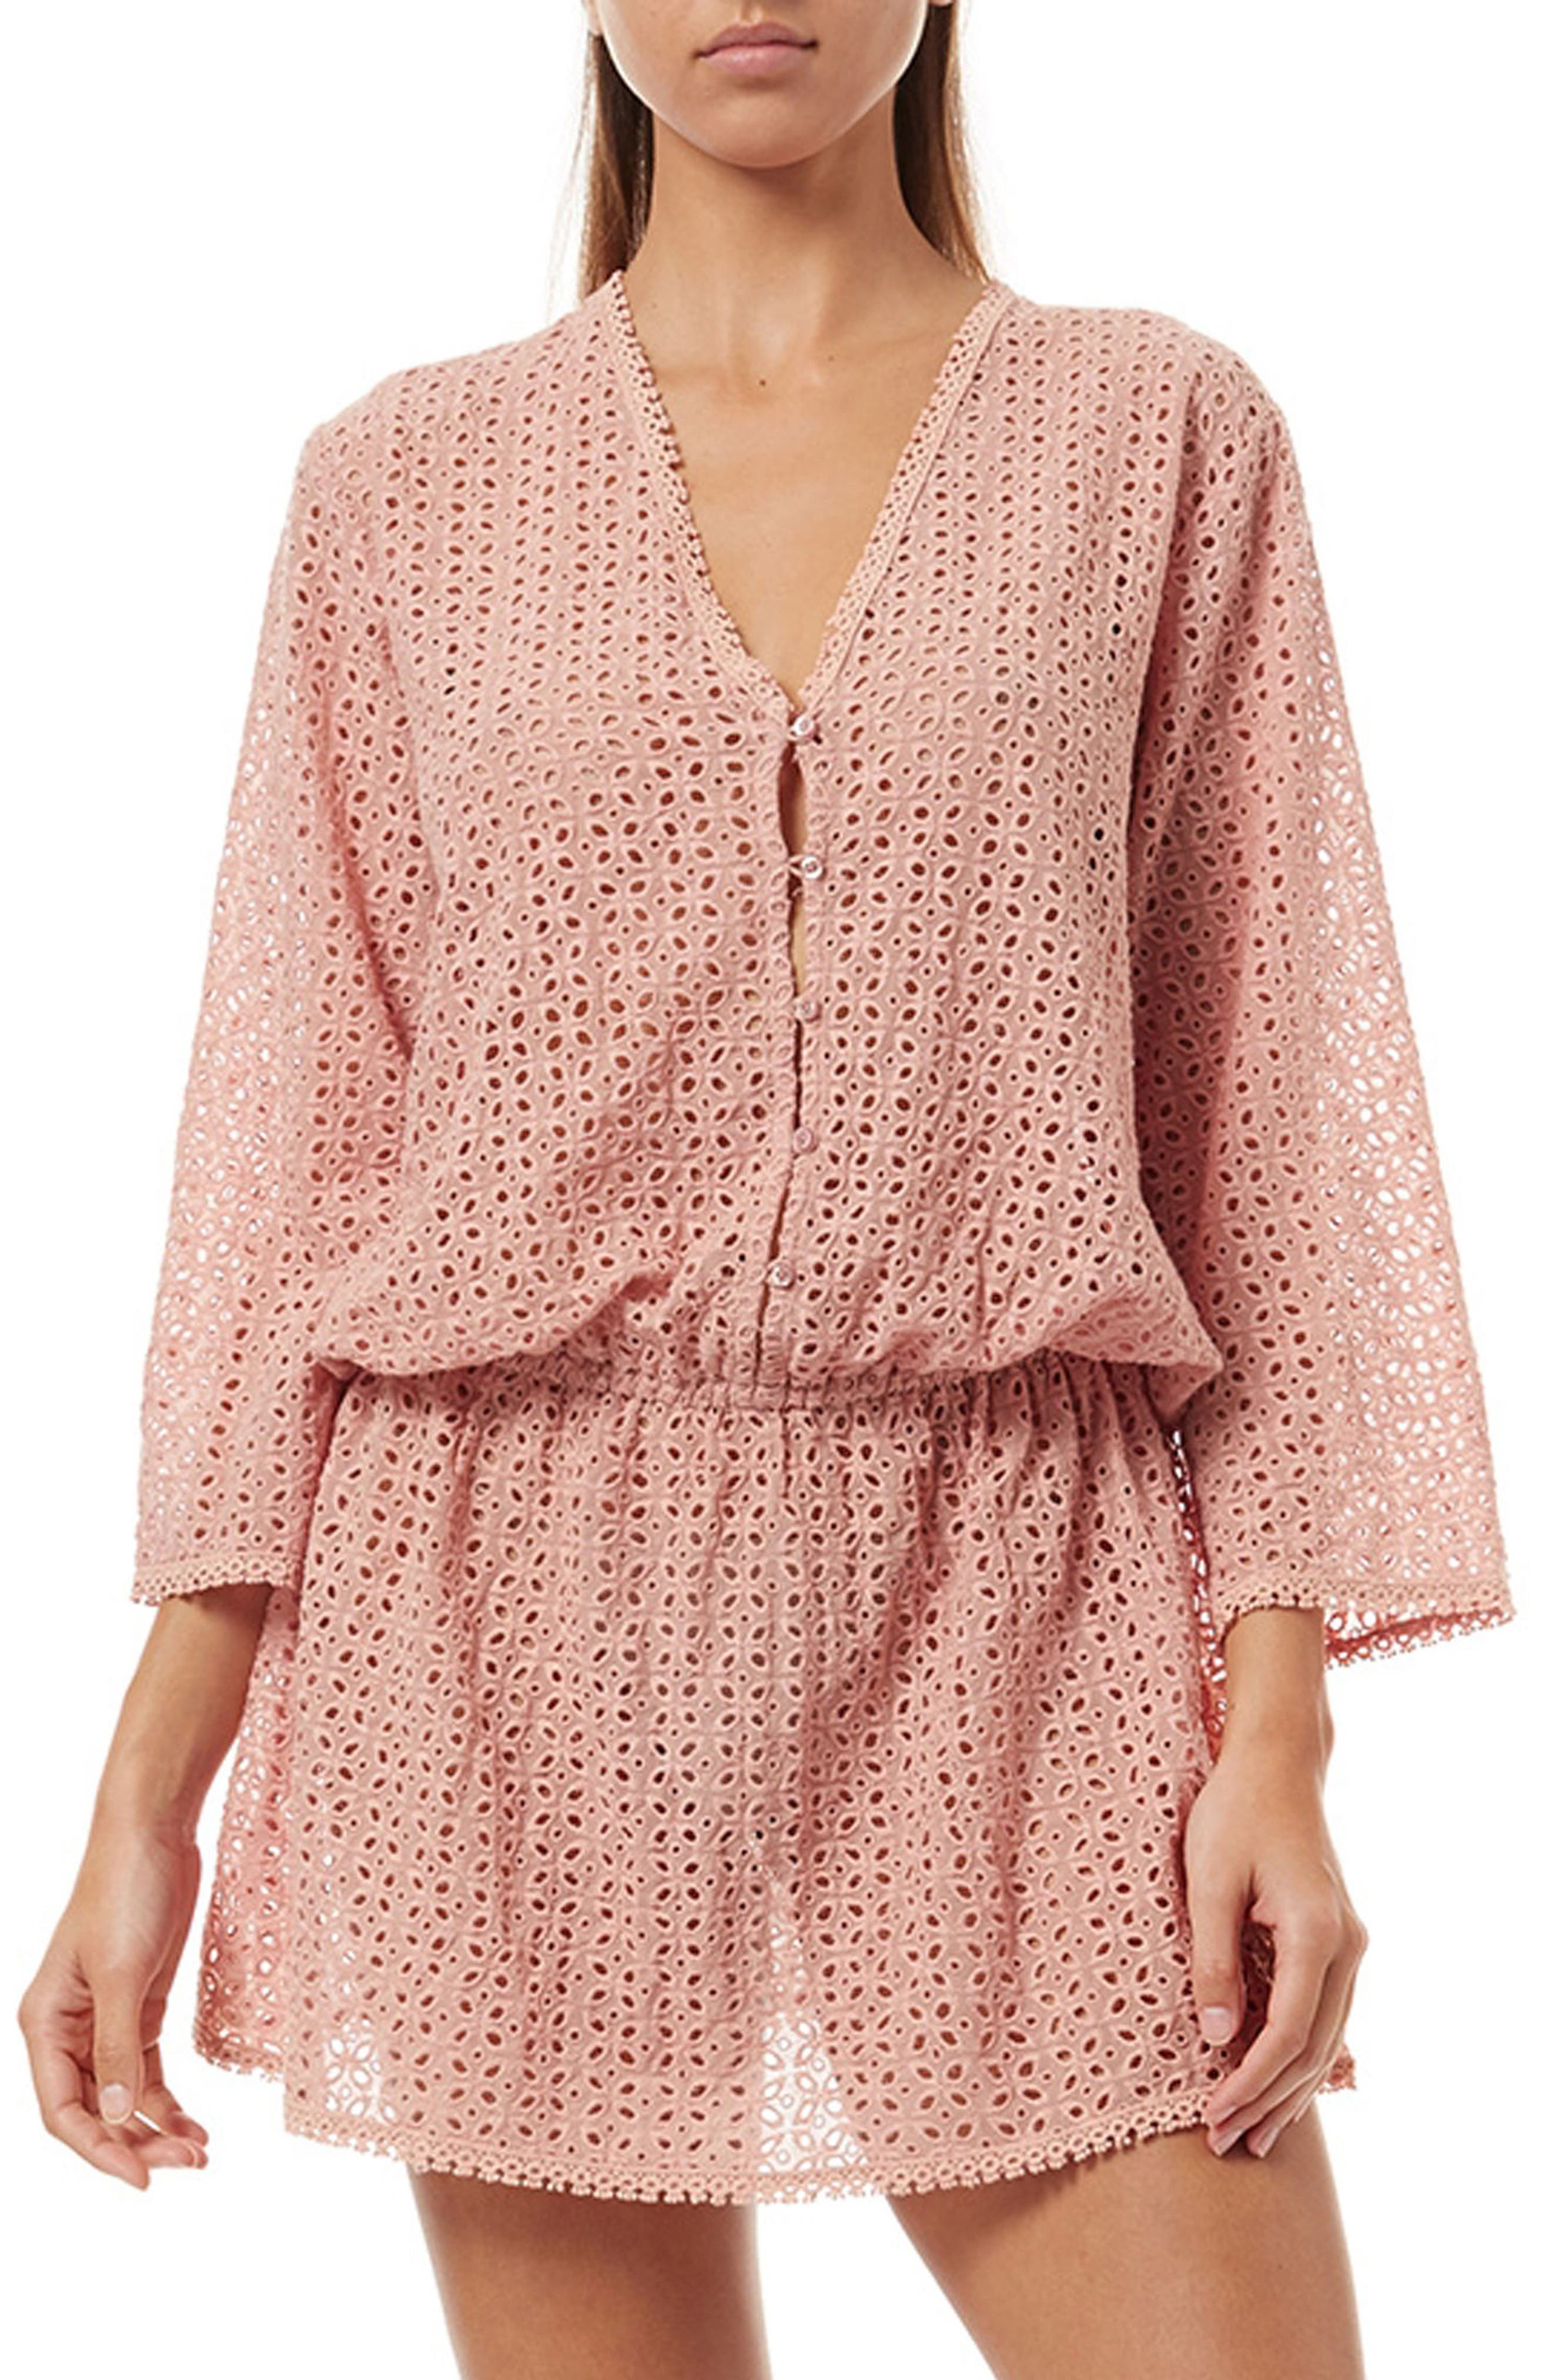 Kylie Cover-Up Dress,                             Main thumbnail 1, color,                             DUSTY ROSE